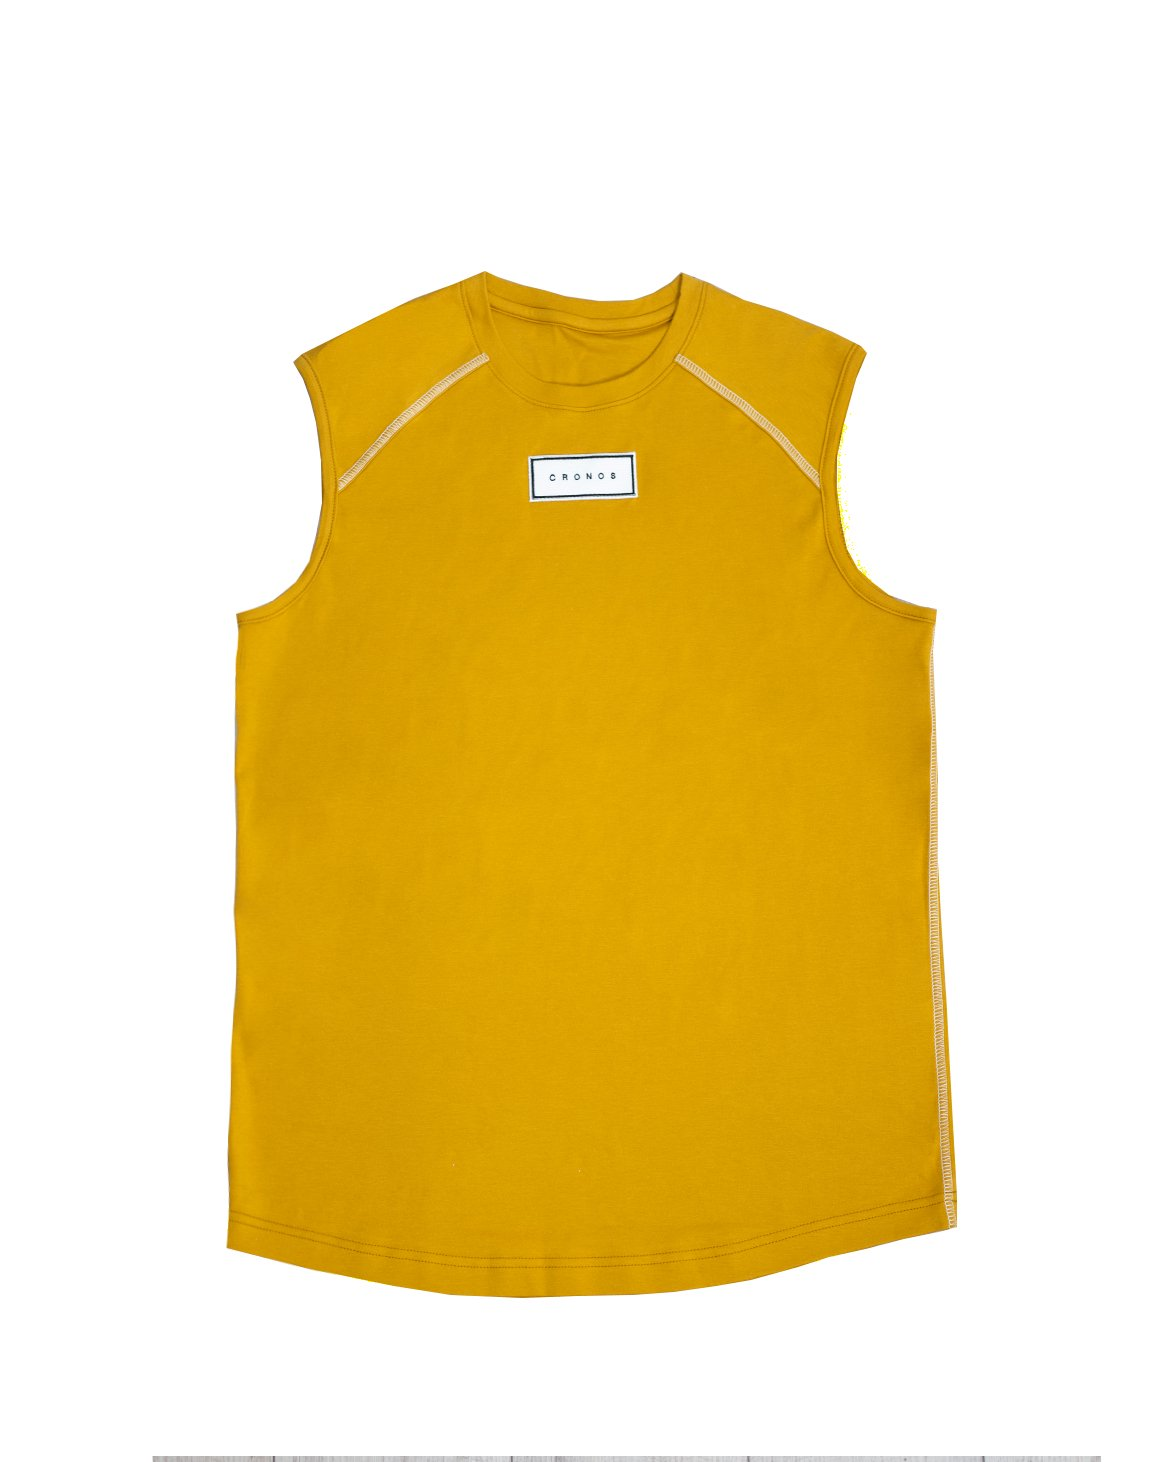 <img class='new_mark_img1' src='https://img.shop-pro.jp/img/new/icons1.gif' style='border:none;display:inline;margin:0px;padding:0px;width:auto;' />FRONT PATCH LOGO SLEEVELESS【YELLOW】